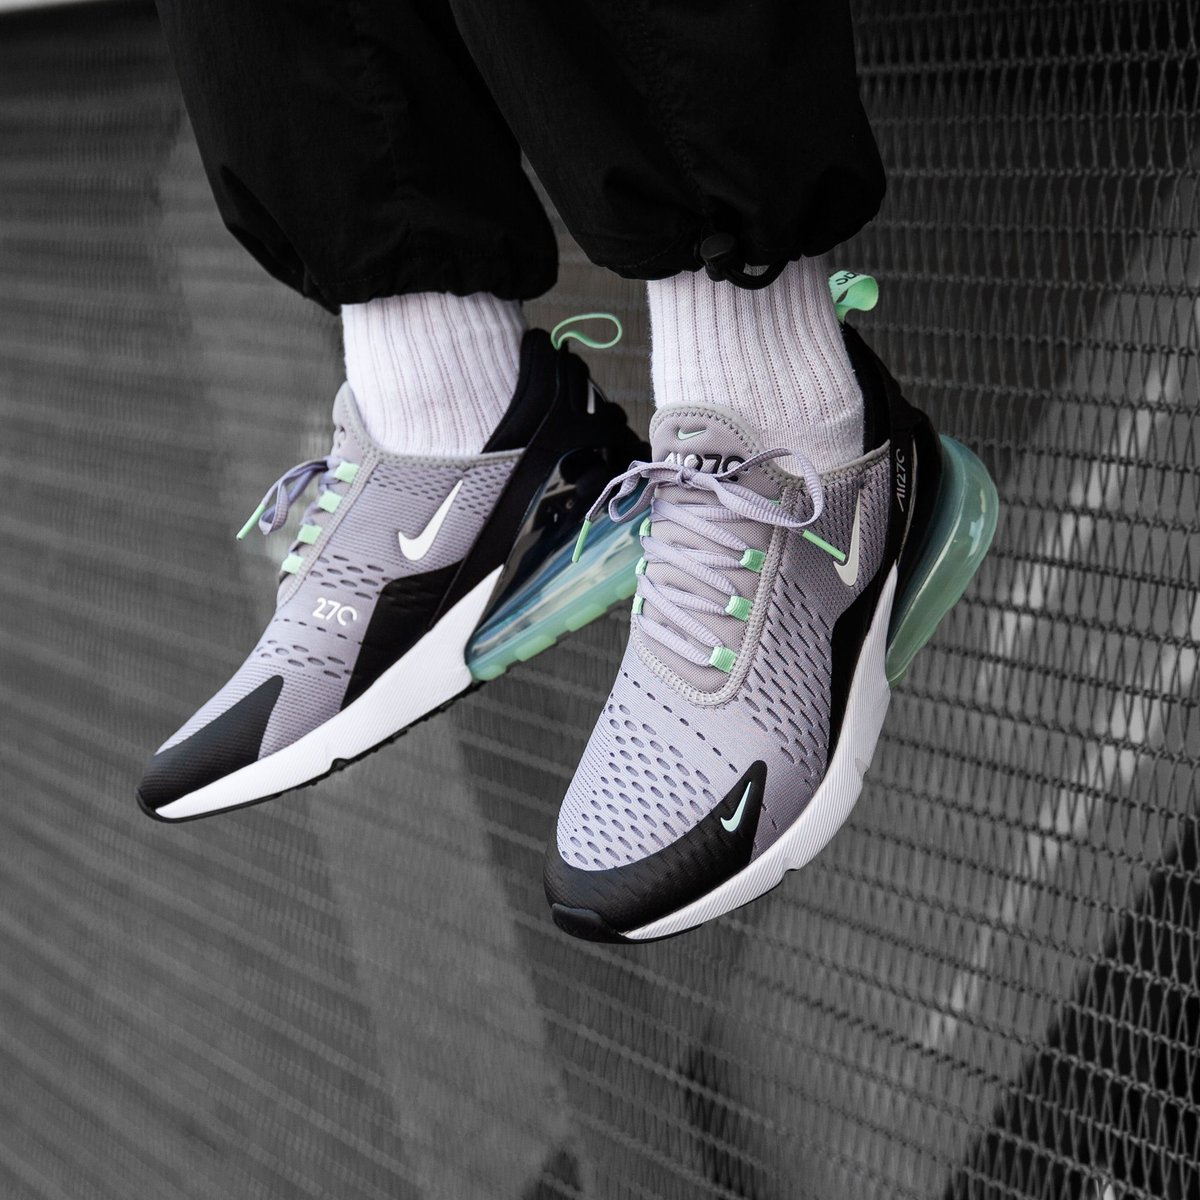 2019 Summer Nike Air Max 270 Atmosphere GreyFresh Mint Black CJ0520 001